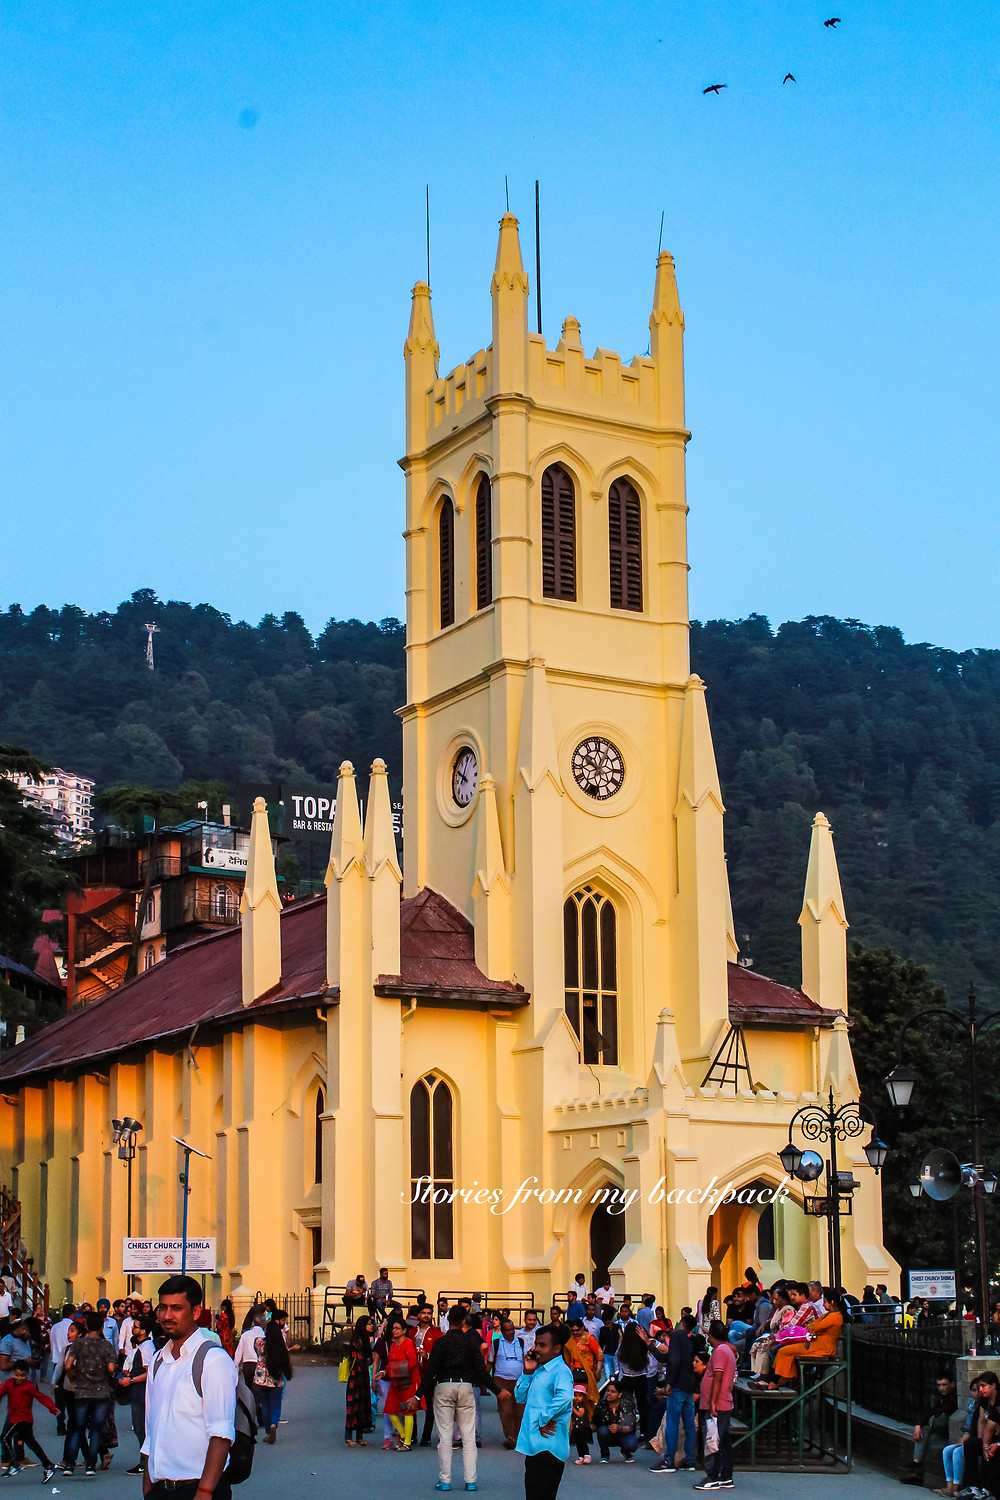 Christ Church Shimla, Shimla things to do, Shimla architecture, Shimla history, Shimla hotels